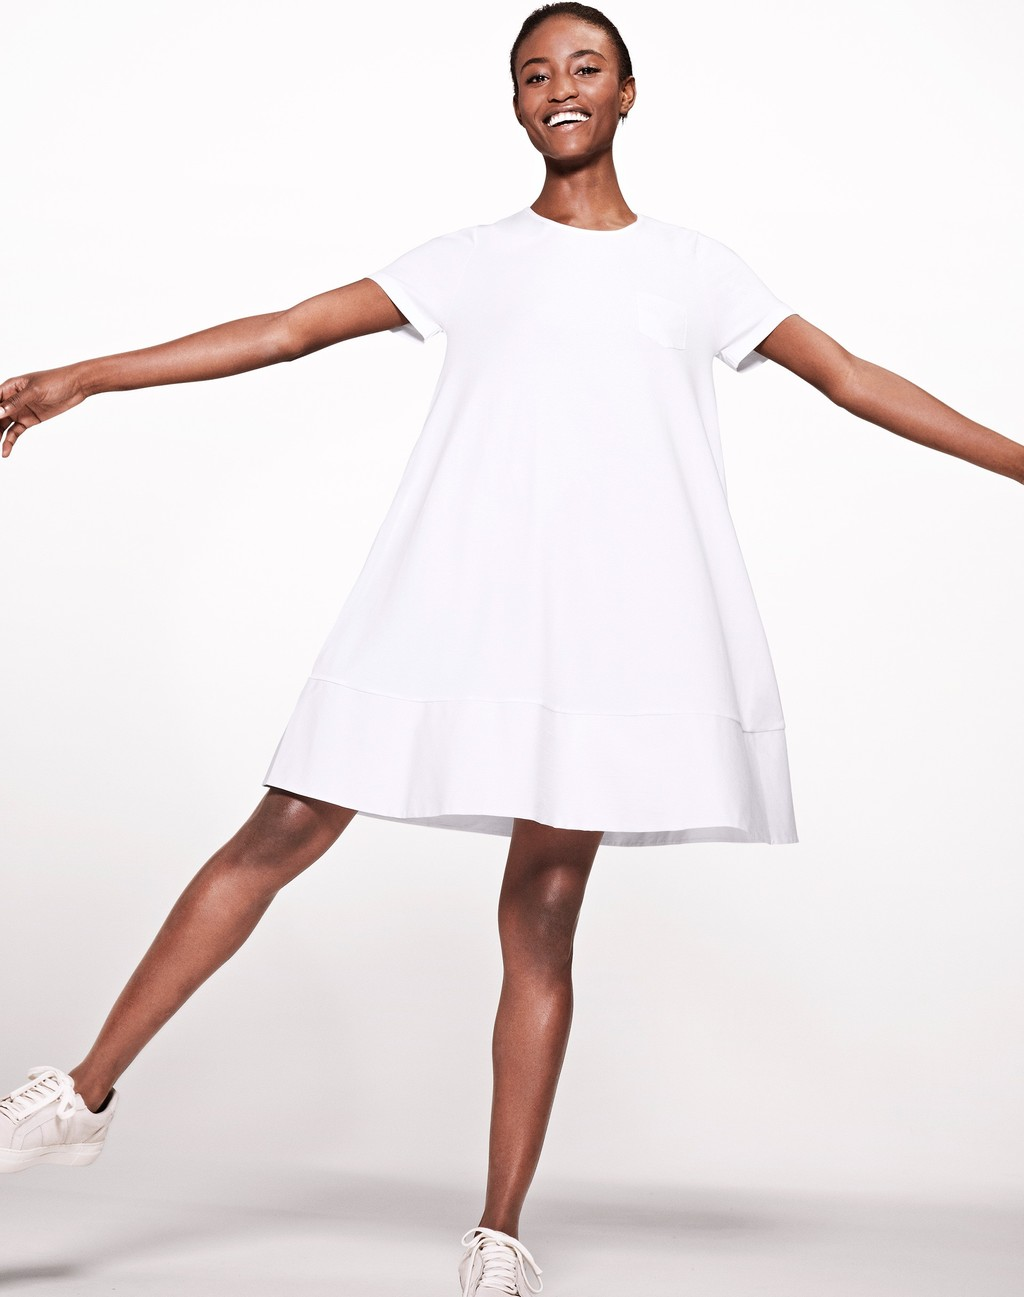 Woven Mix Swing Dress Soft White - style: trapeze; fit: loose; pattern: plain; predominant colour: white; occasions: casual; length: just above the knee; fibres: cotton - 100%; neckline: crew; sleeve length: short sleeve; sleeve style: standard; pattern type: fabric; texture group: jersey - stretchy/drapey; season: s/s 2016; wardrobe: basic